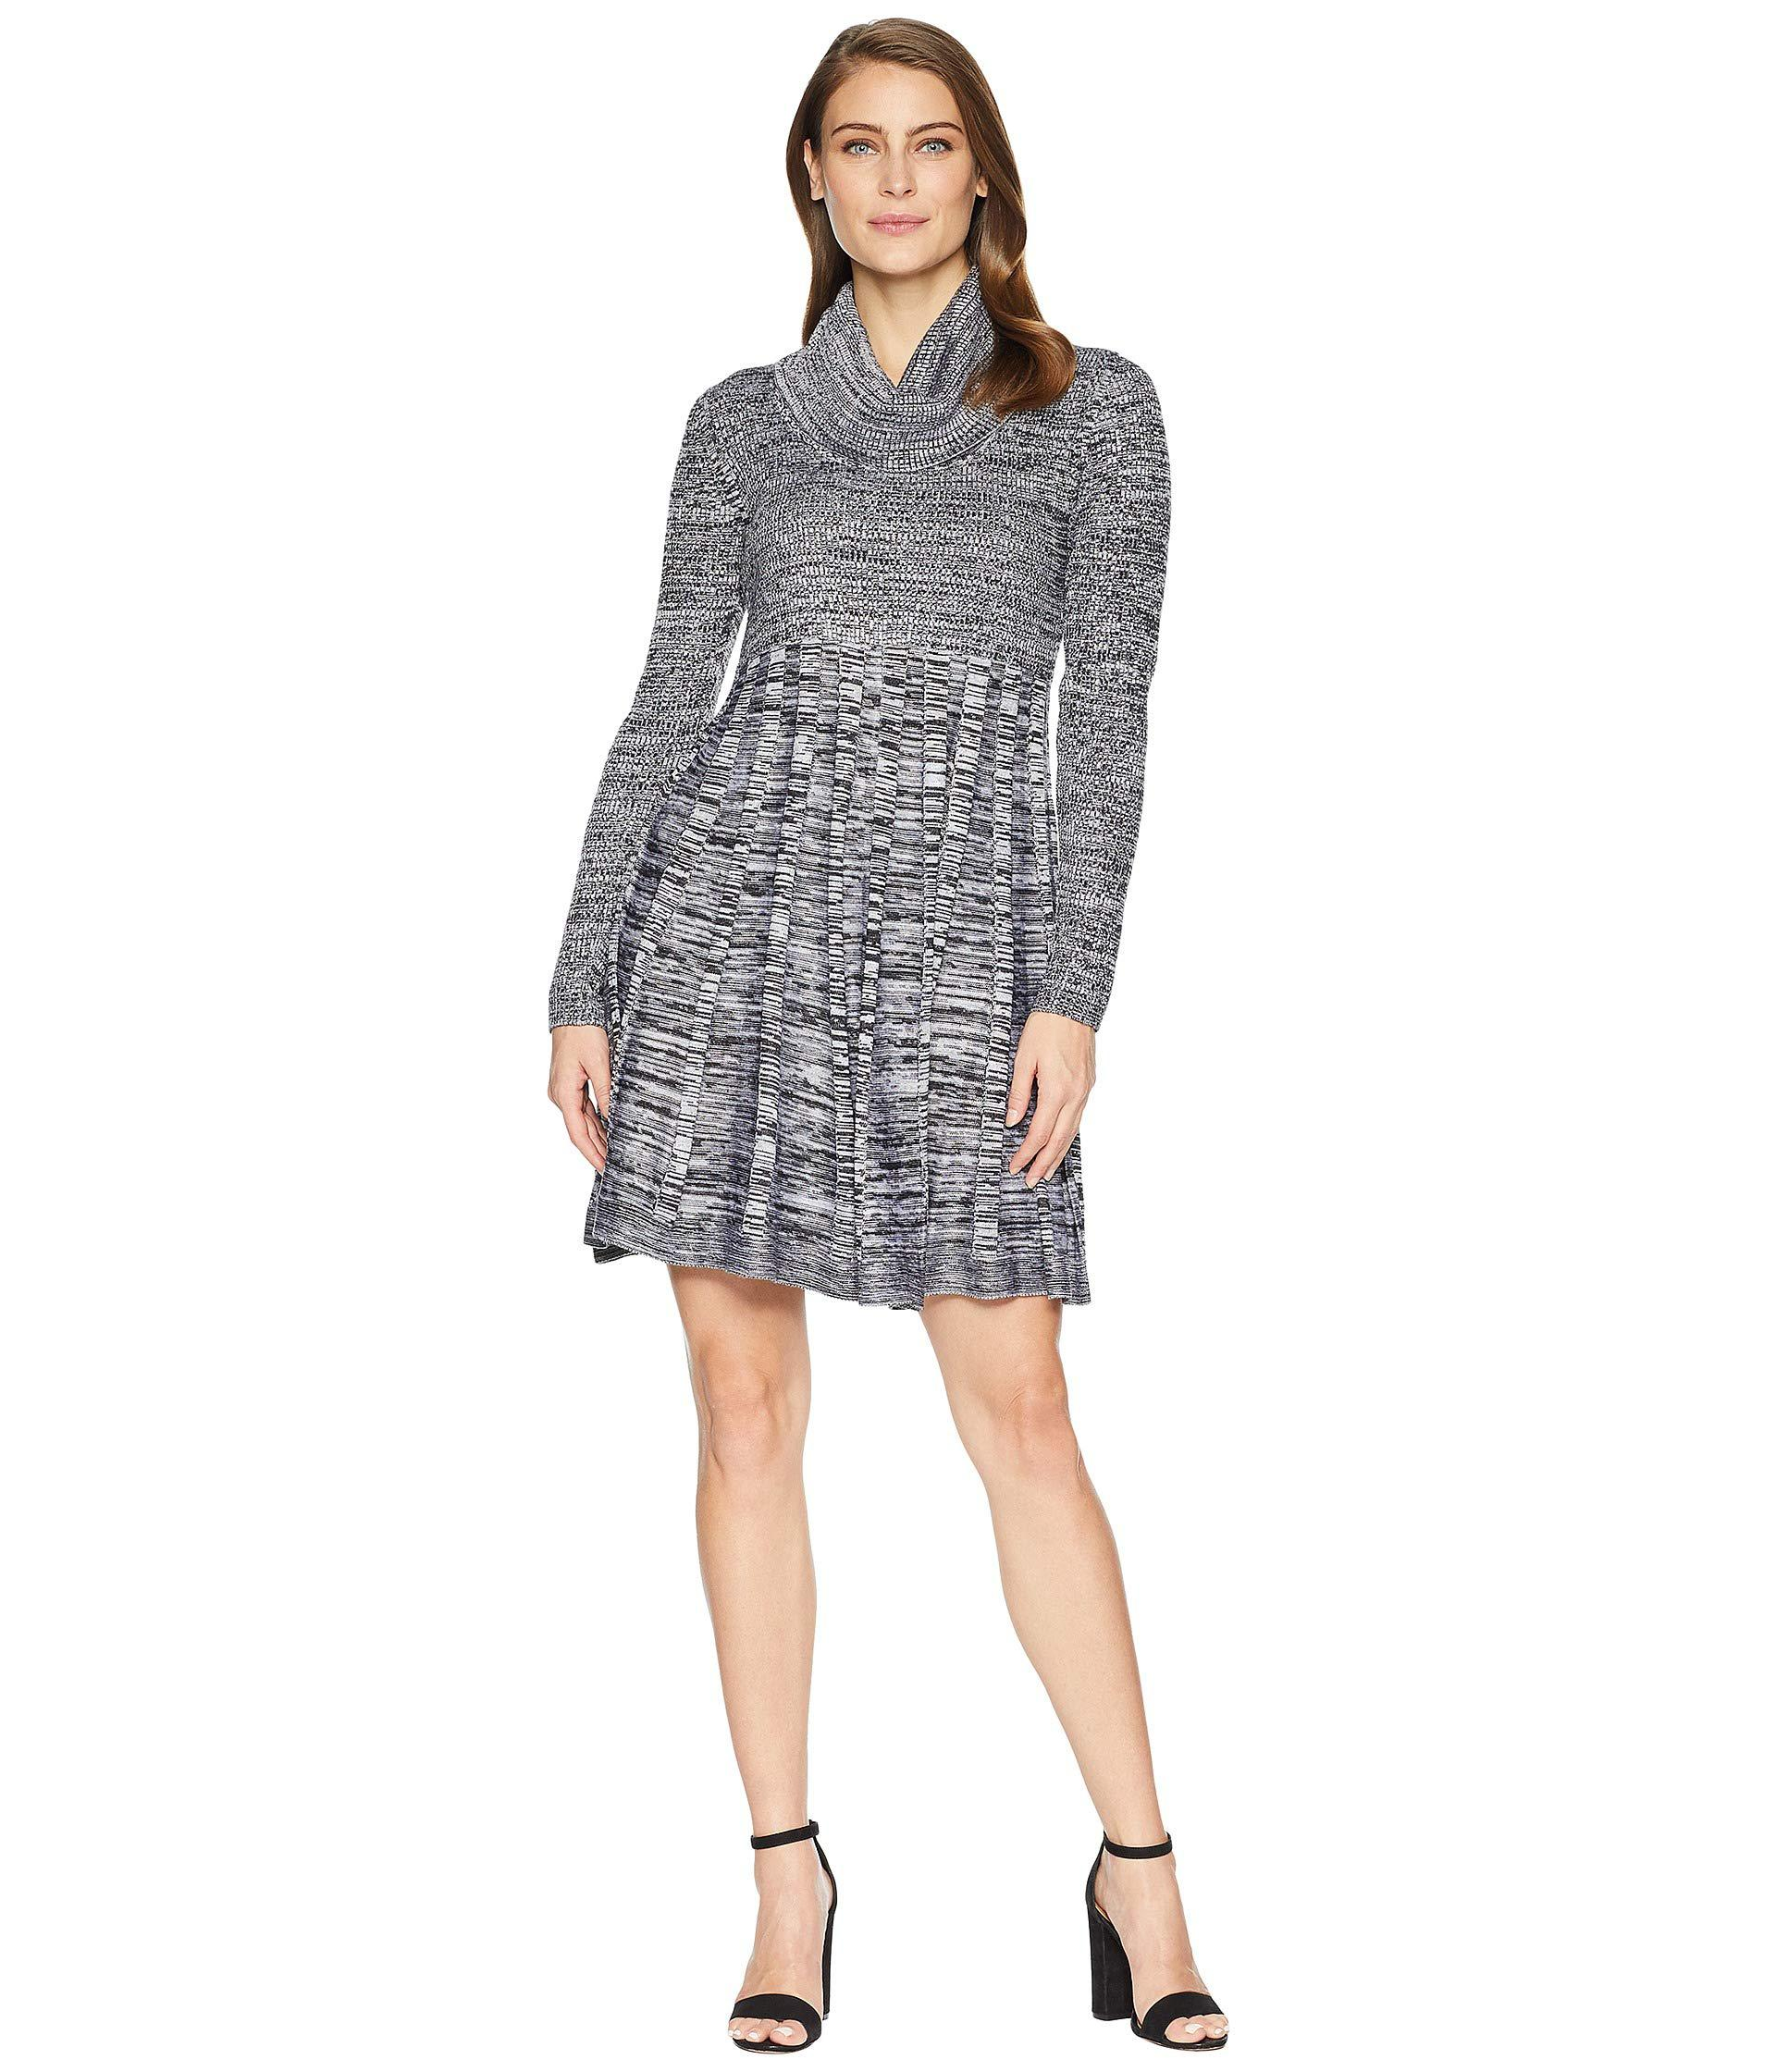 7534b0e054473 Lyst - Calvin Klein Marled Cowl Neck Fit Flare Sweater Dress ...